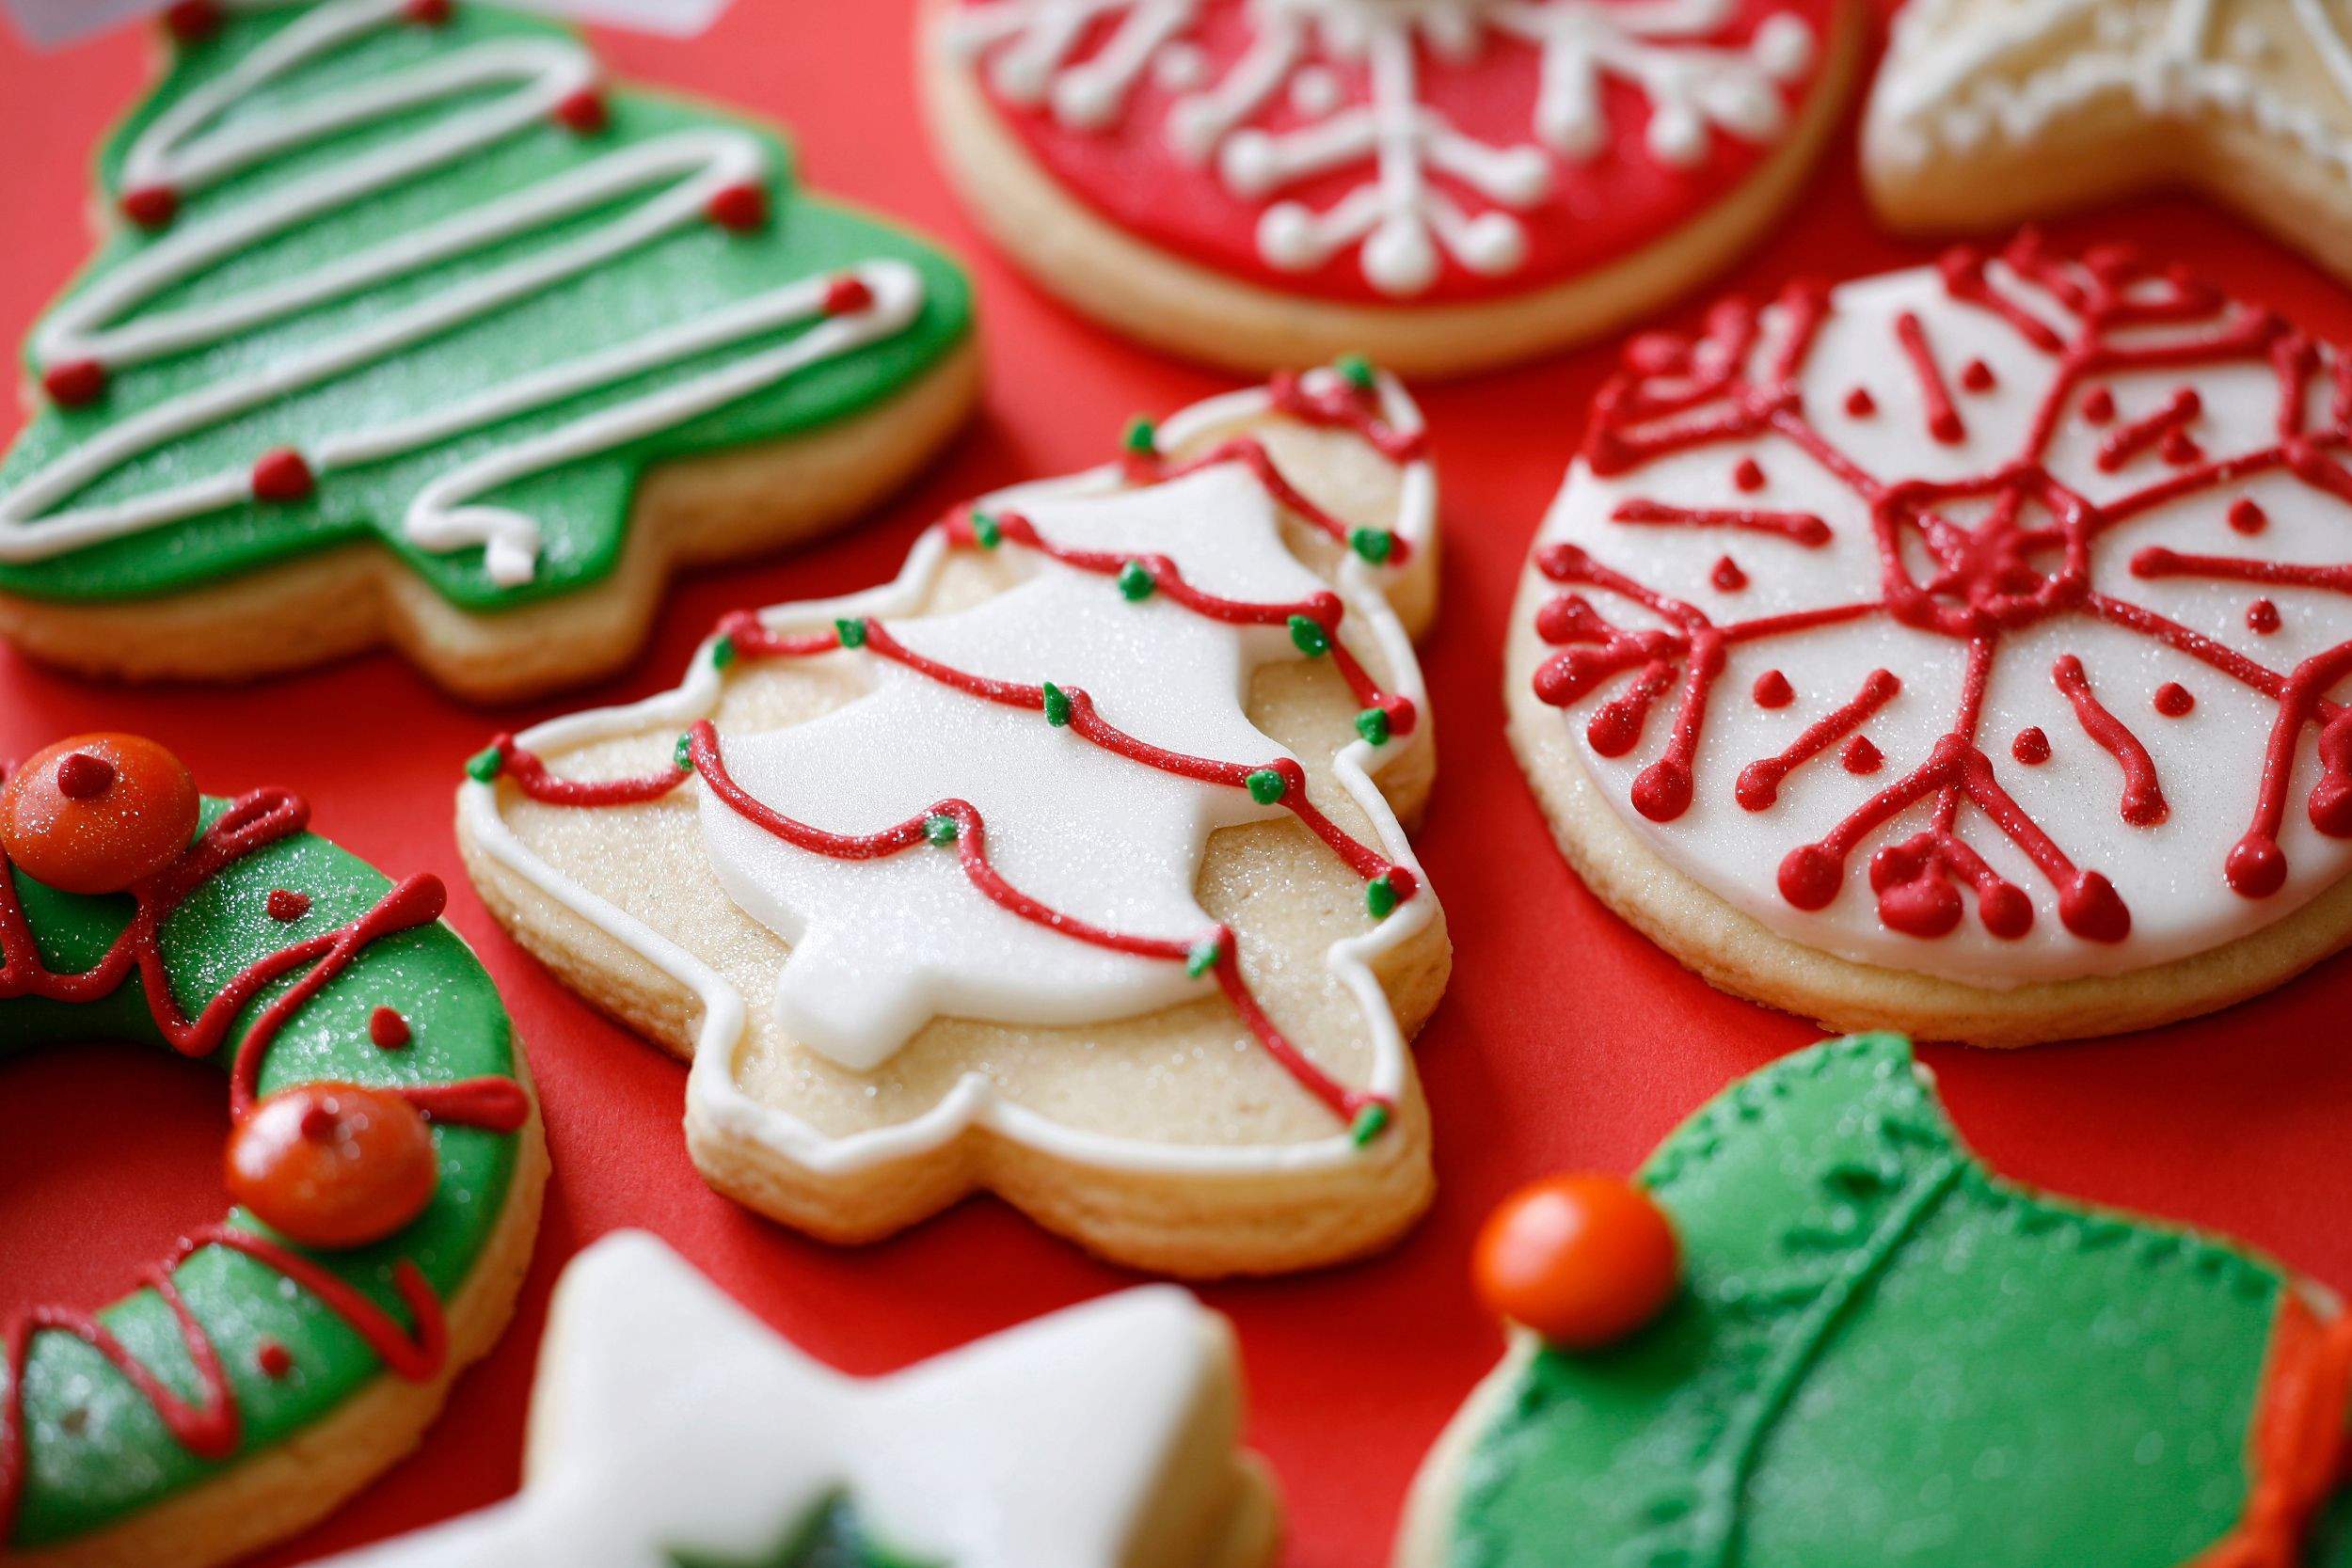 Frosting For Christmas Cookies  Royal Icing Recipe for Decorating Cookies